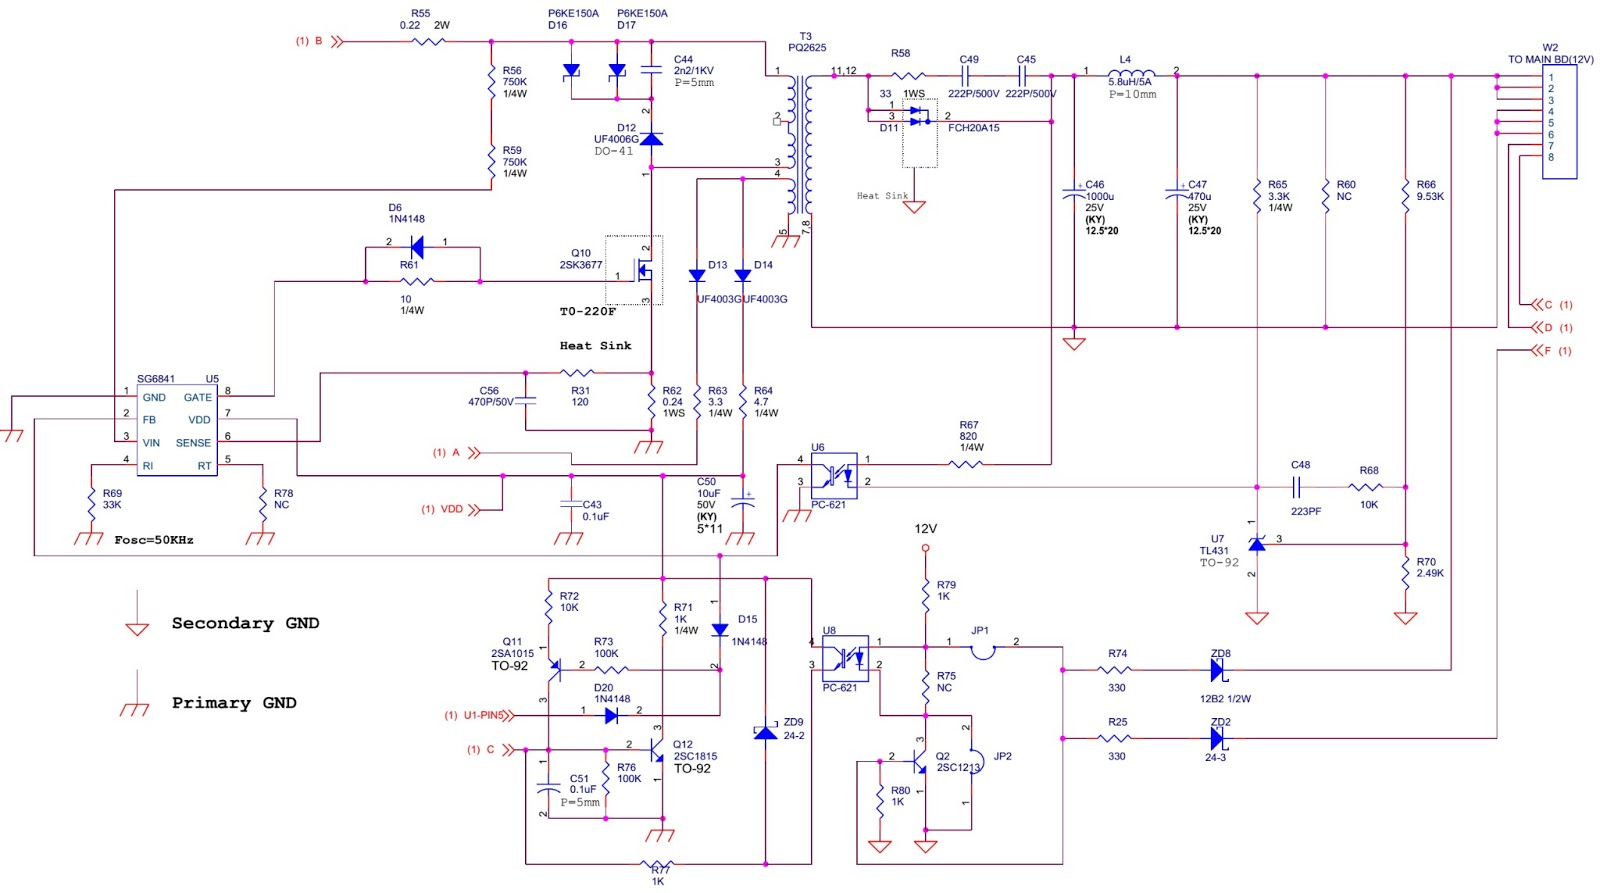 vizio l30wgu 30 lcd tv main power schematic circuit diagram rh electronicshelponline blogspot com visio wiring diagram stencil Direct TV Wiring Diagram